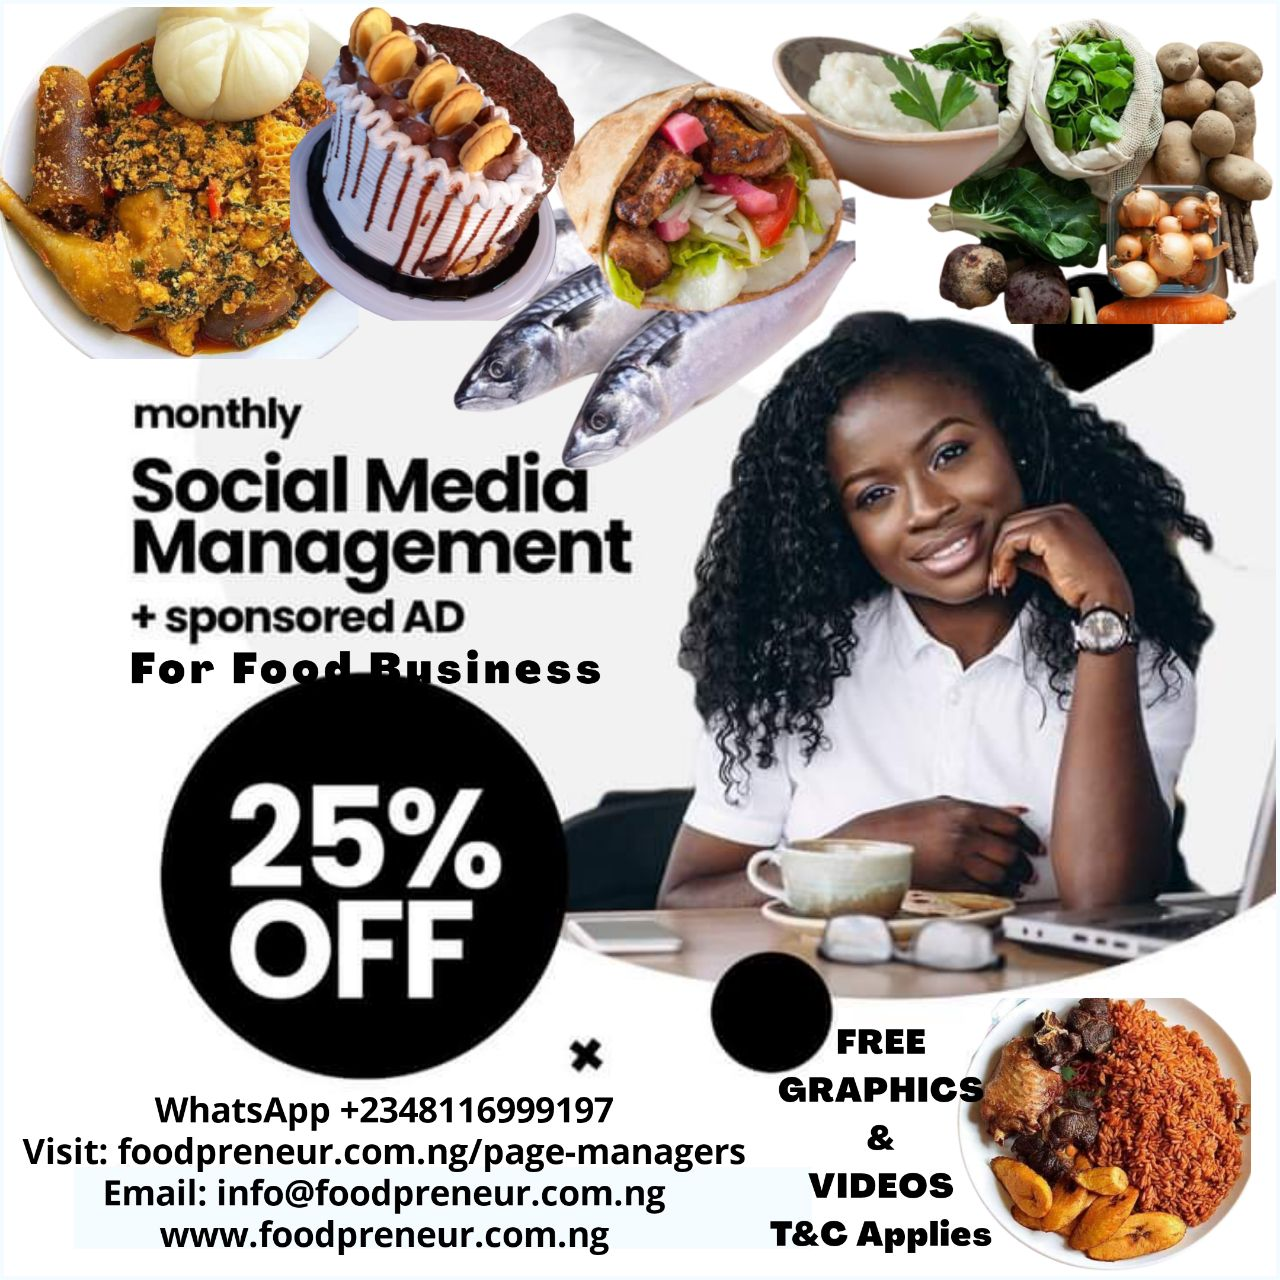 Social Media Page Management For F&B Business